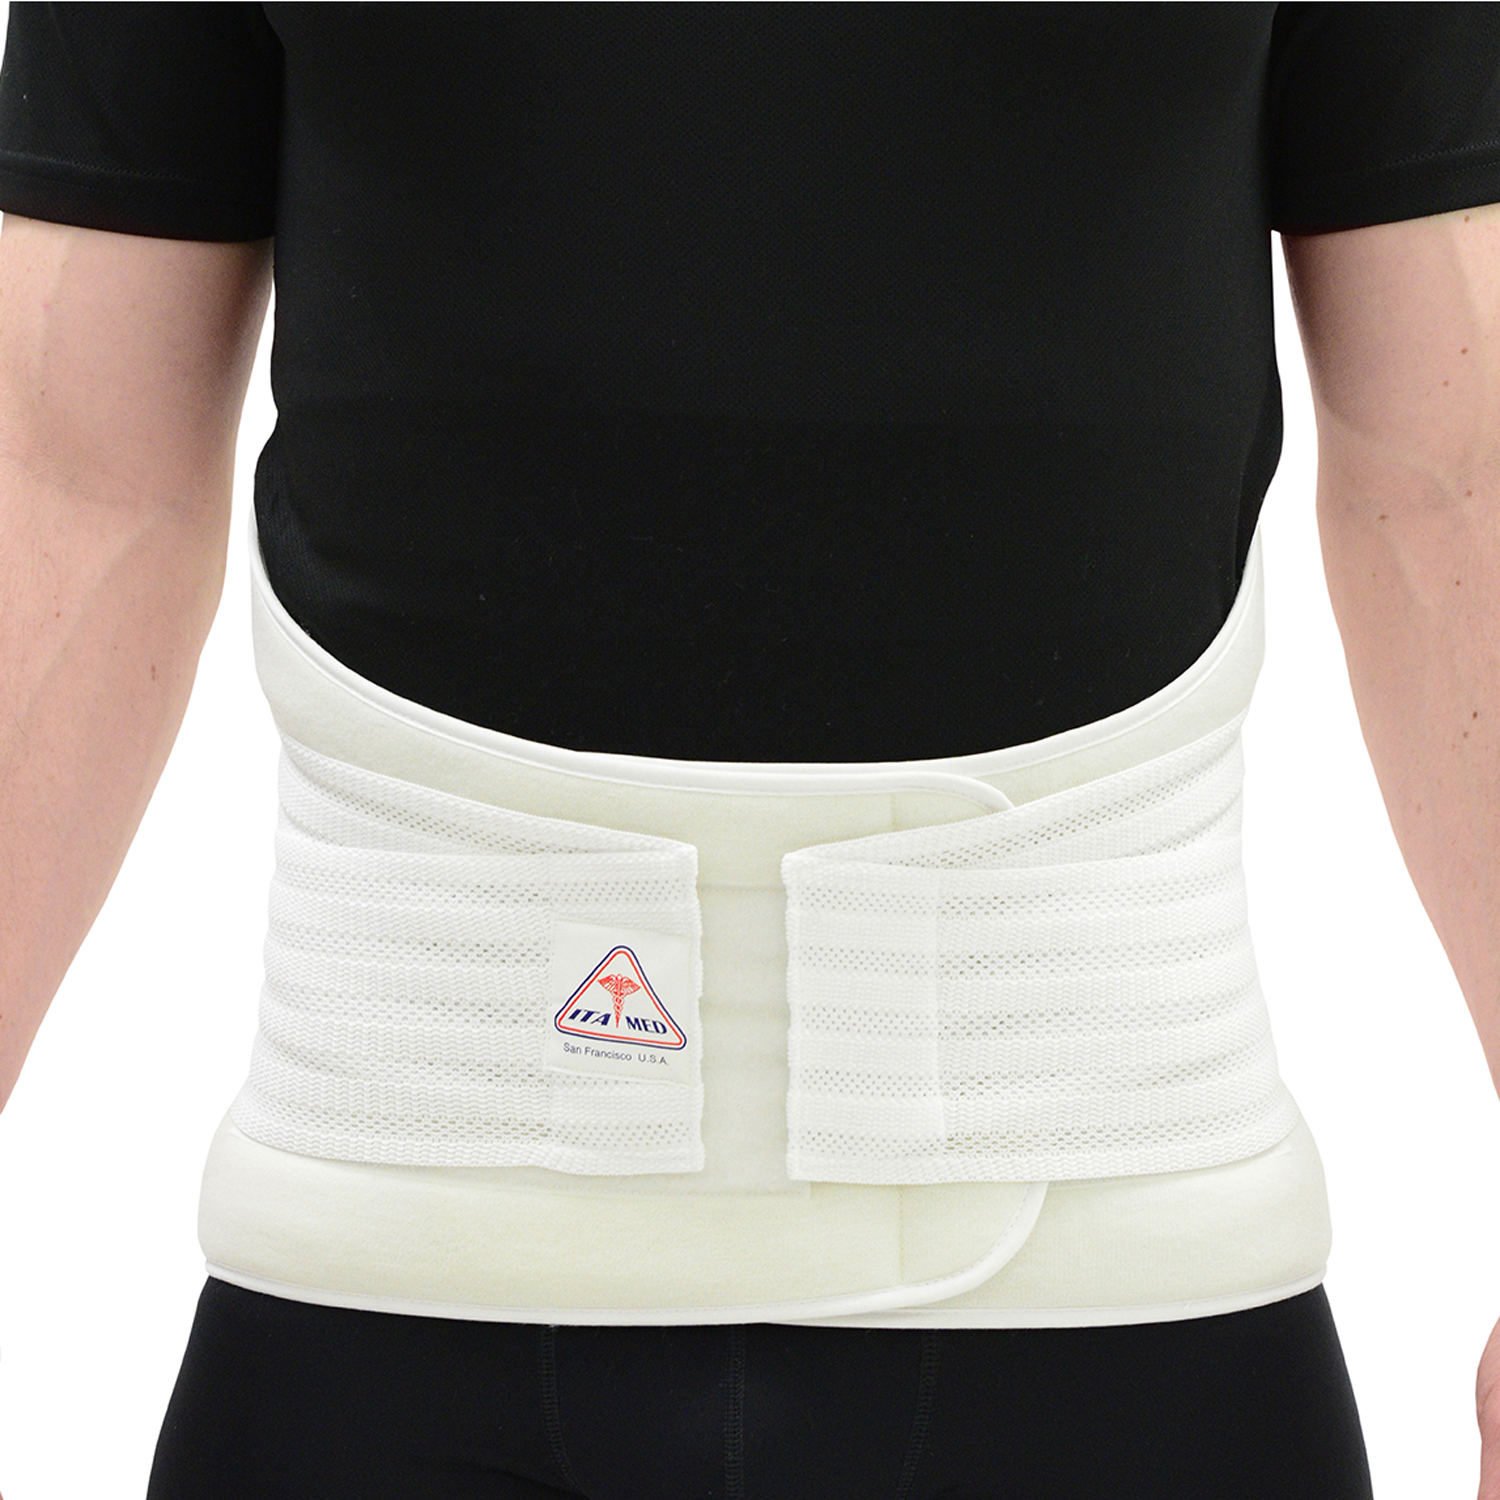 ITA-MED Style LS-112 Extra Strong Lumbo – Sacral Support